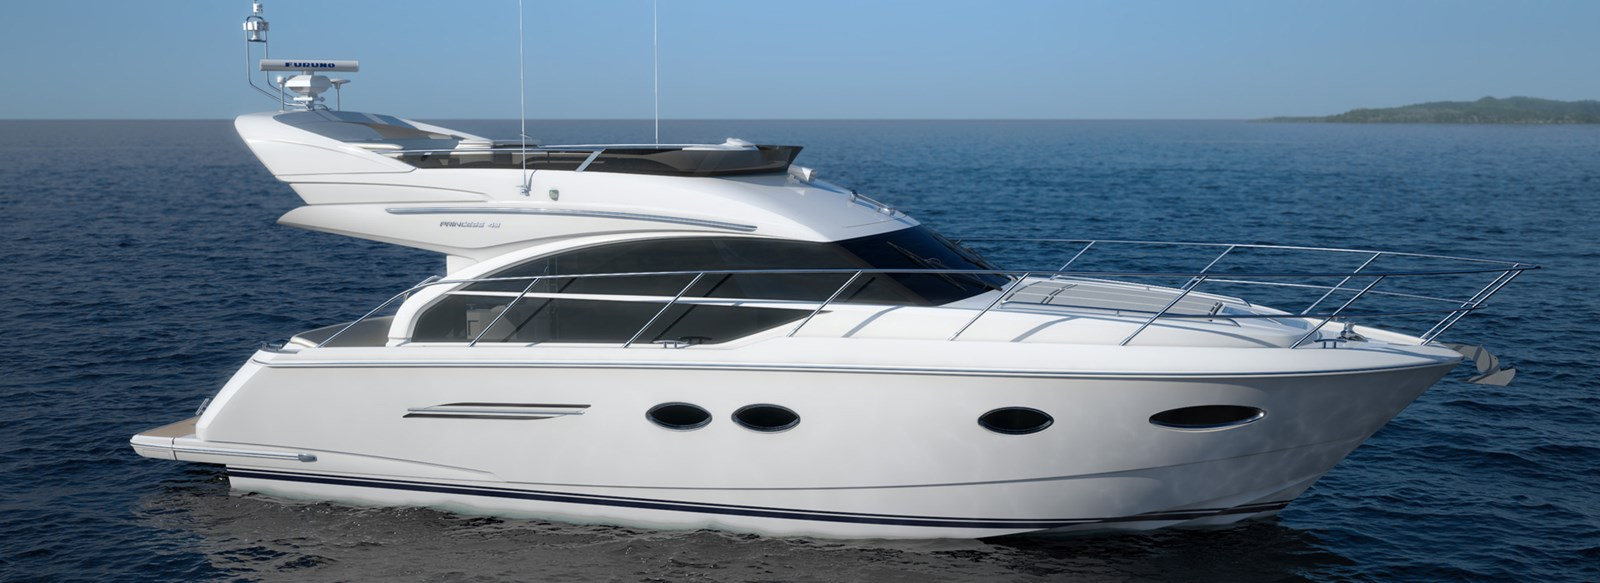 New Princess 43 Flybridge Yachts For Sale